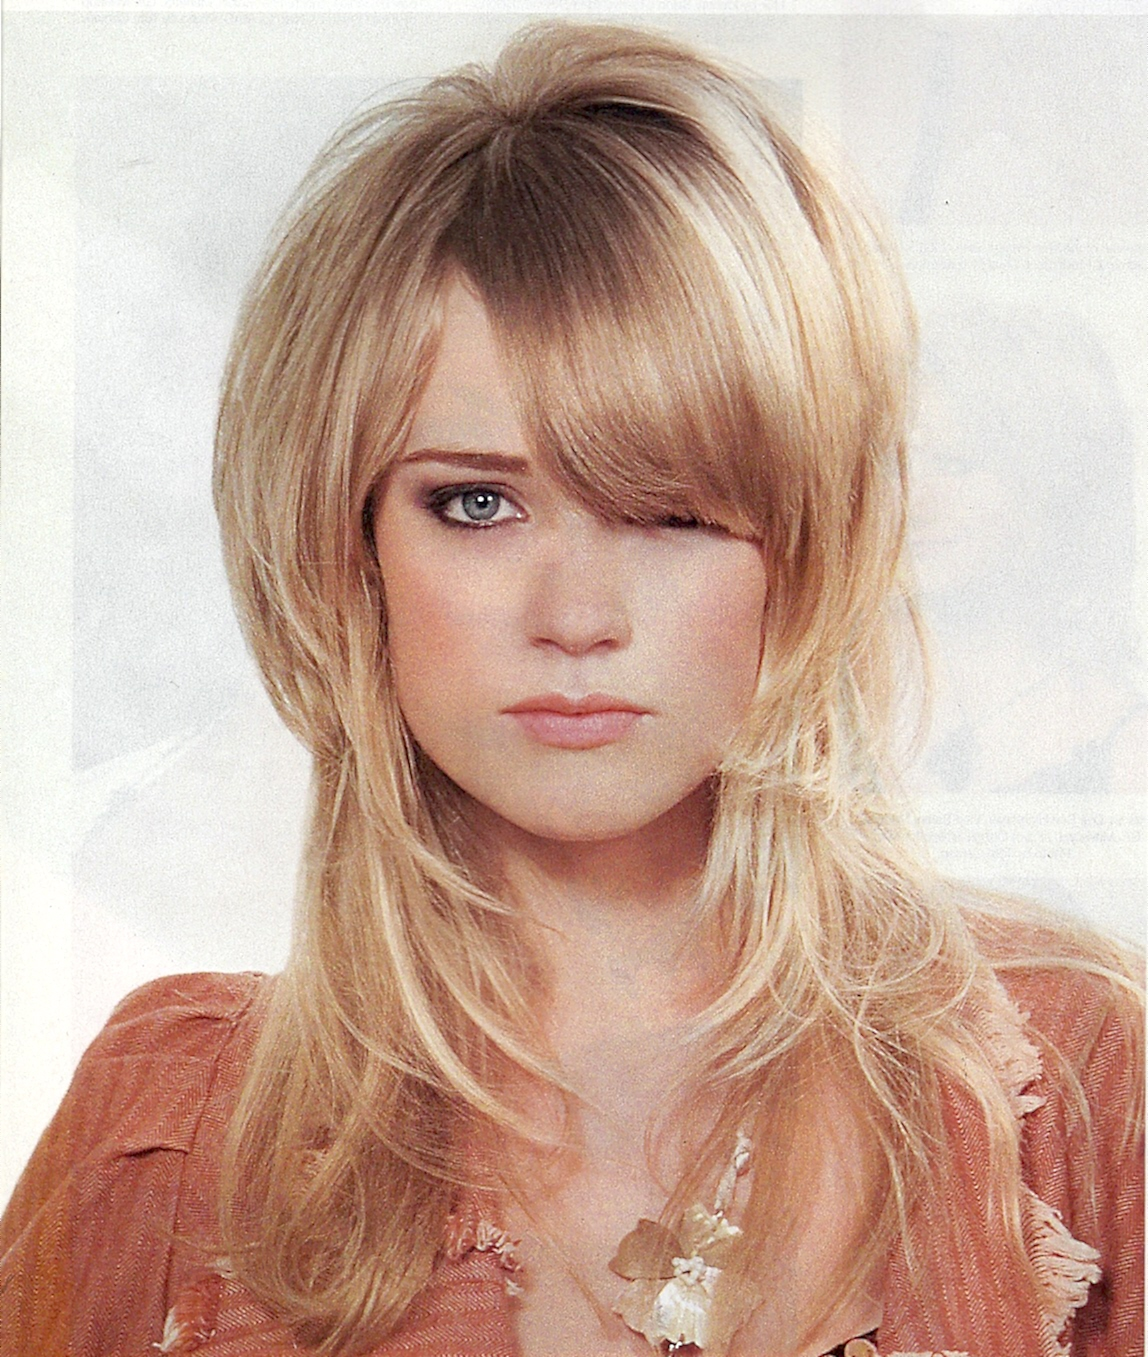 Hairstyle: Hairstyles Popular 2012: Cool Cropped Pixie Hairstyle For